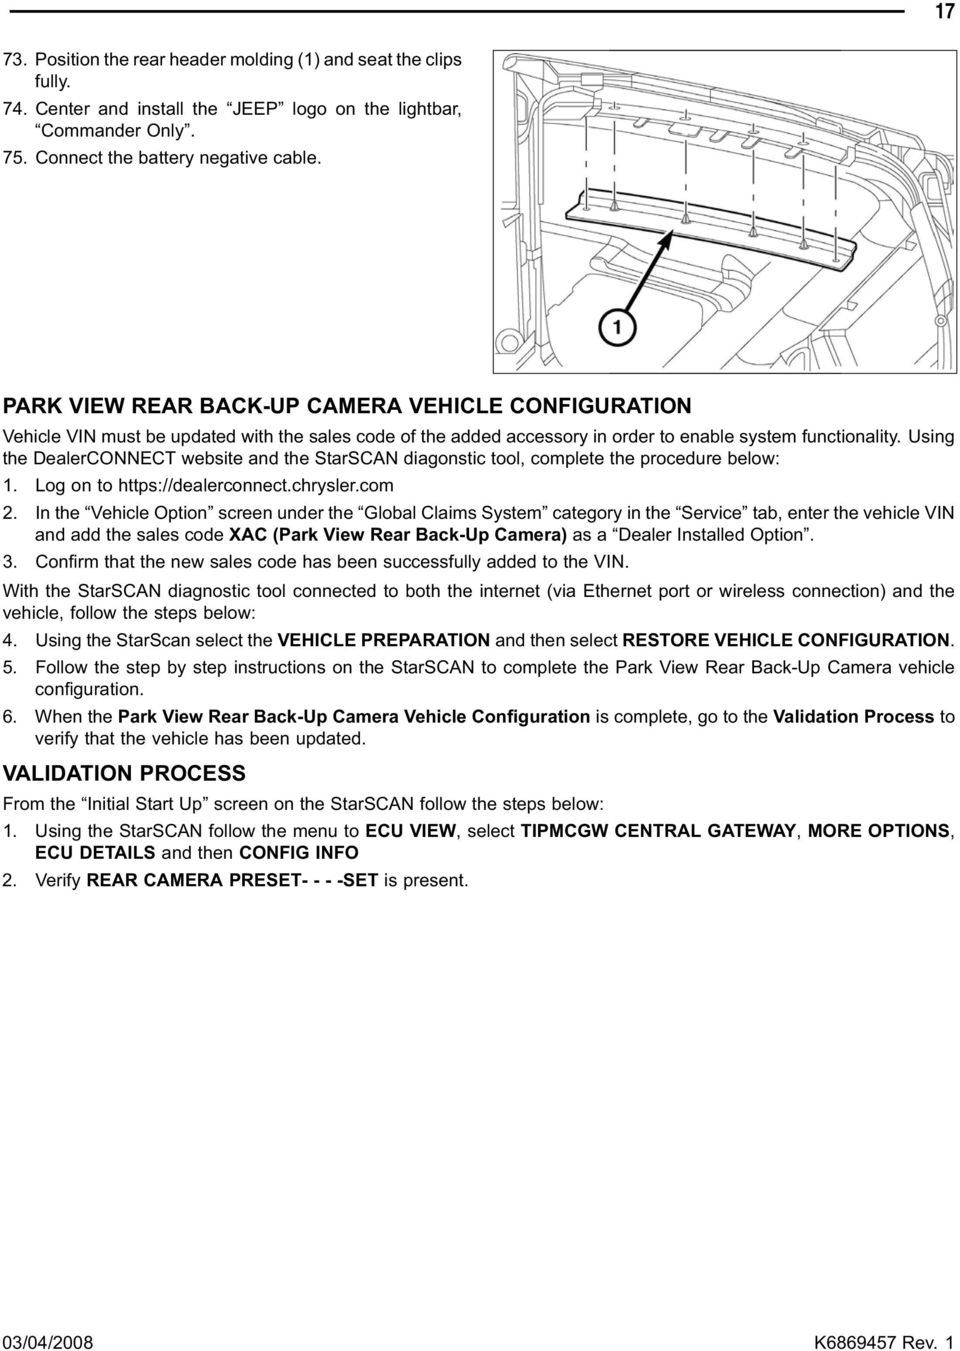 Backup Camera Jeep Commander Grand Cherokee Pdf How To Install A Trailer Hitch Wiring Harness Using The Dealerconnect Website And Starscan Diagonstic Tool Complete Procedure Below 1